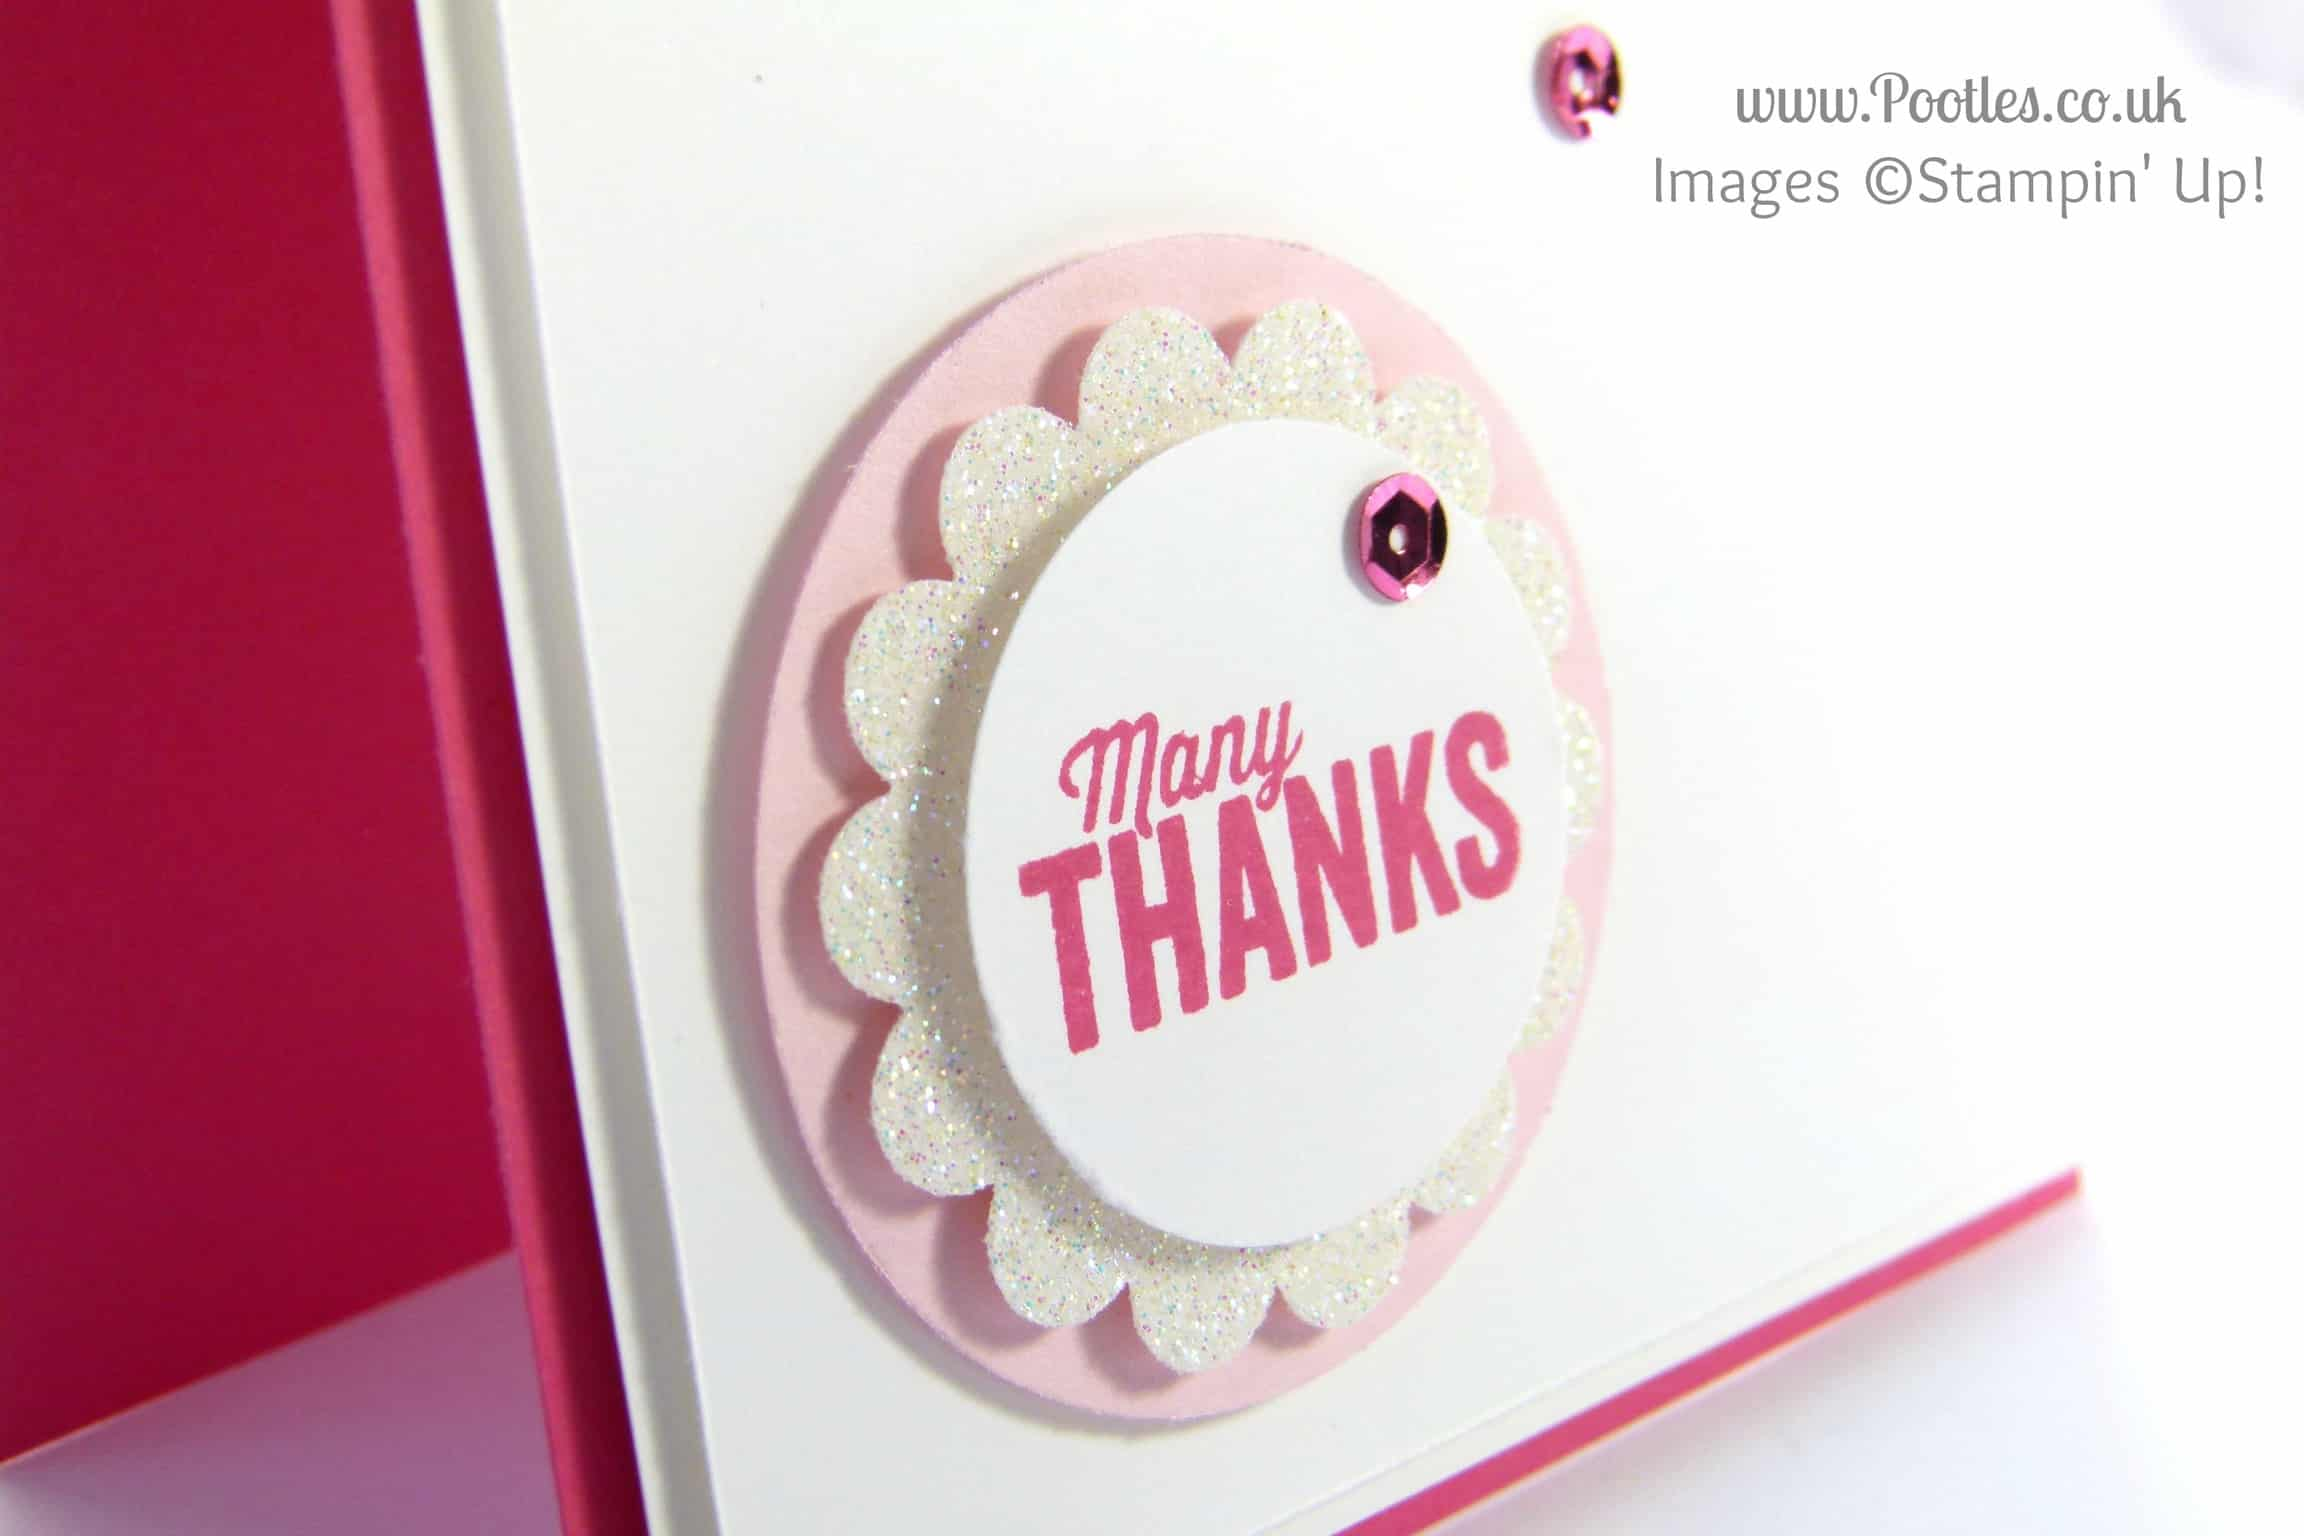 Stampin' Up! UK Demonstrator Pootles - Another Thank You. Scattered with Sequins Punches Close Up